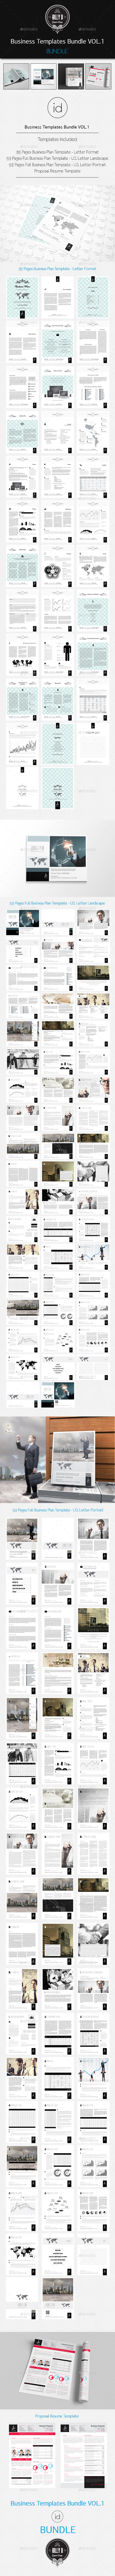 GraphicRiver Business Templates Bundle Vol.1 8955841